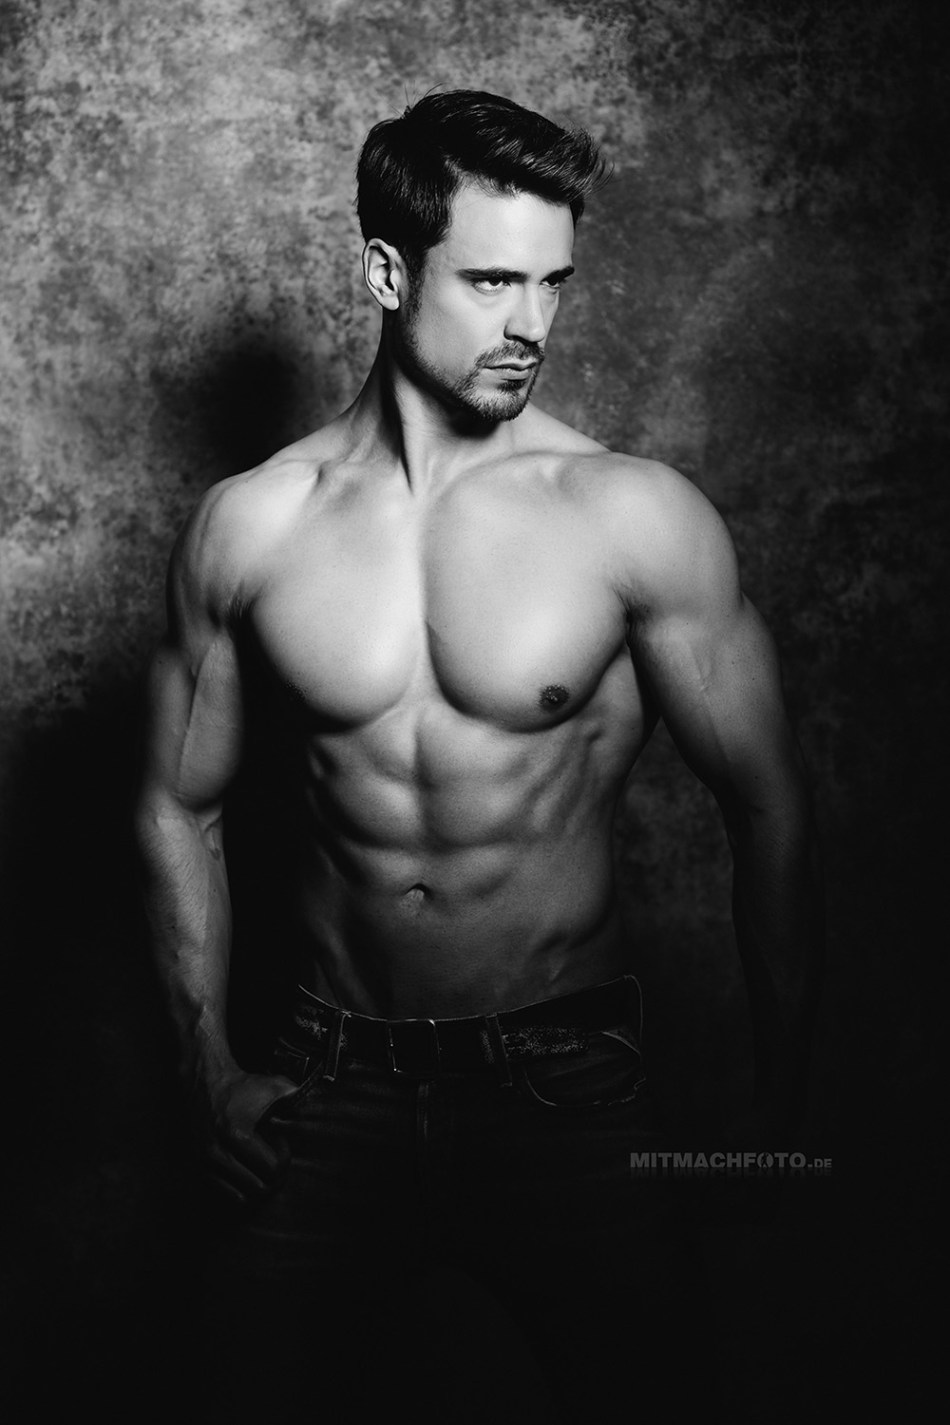 From Germany to the world. We introduce you German beauty Marcel Völker posing and photographed in black and white by talented Heike Katthagen.